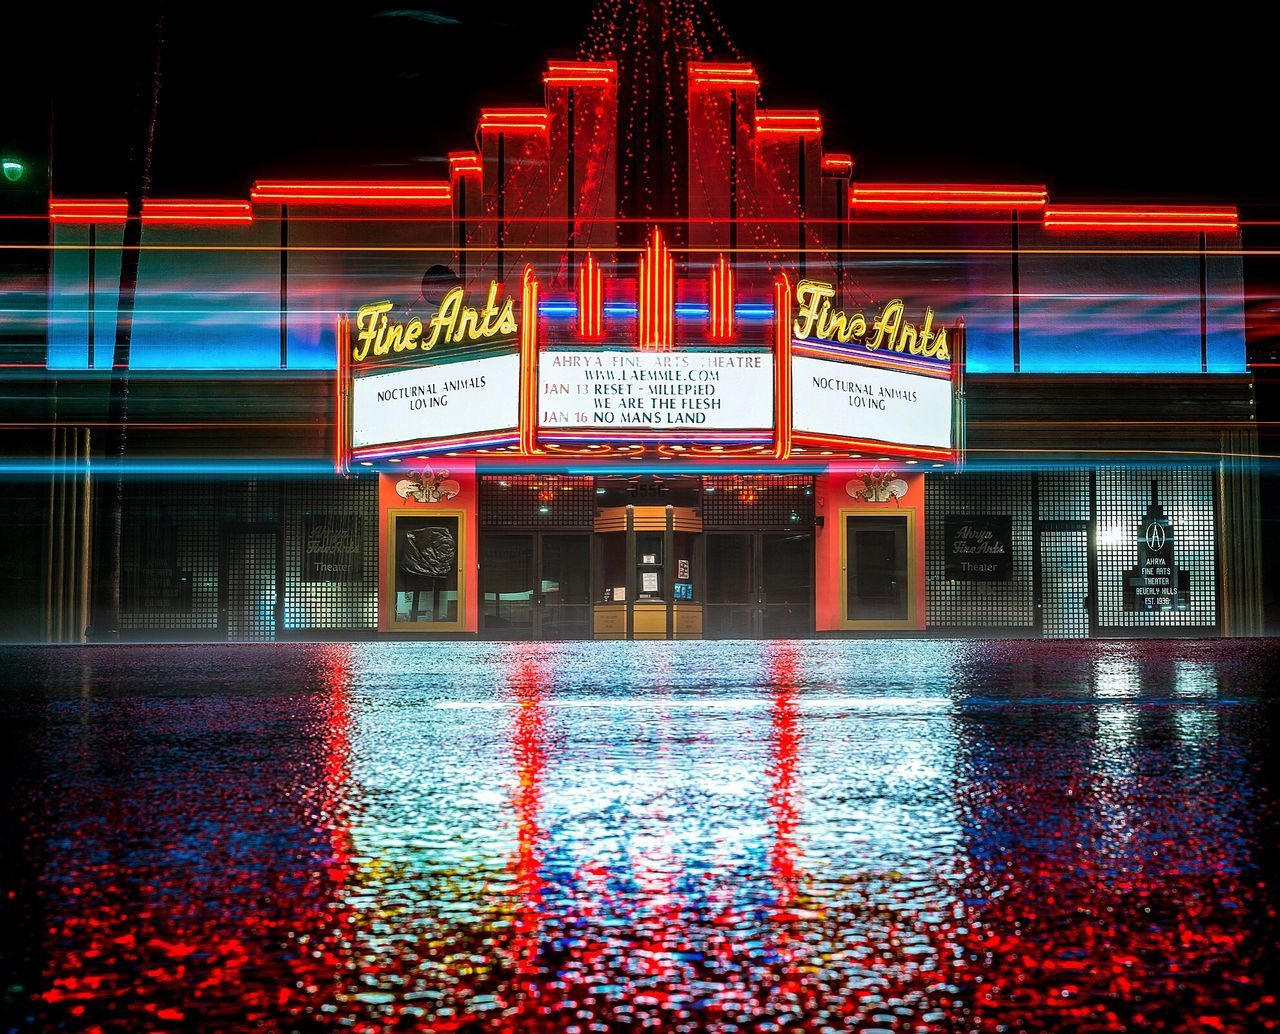 Fine arts theatre on Wilshire Red Night Reflection Architecture Water Neon Text No People Multi Colored Built Structure Outdoors City